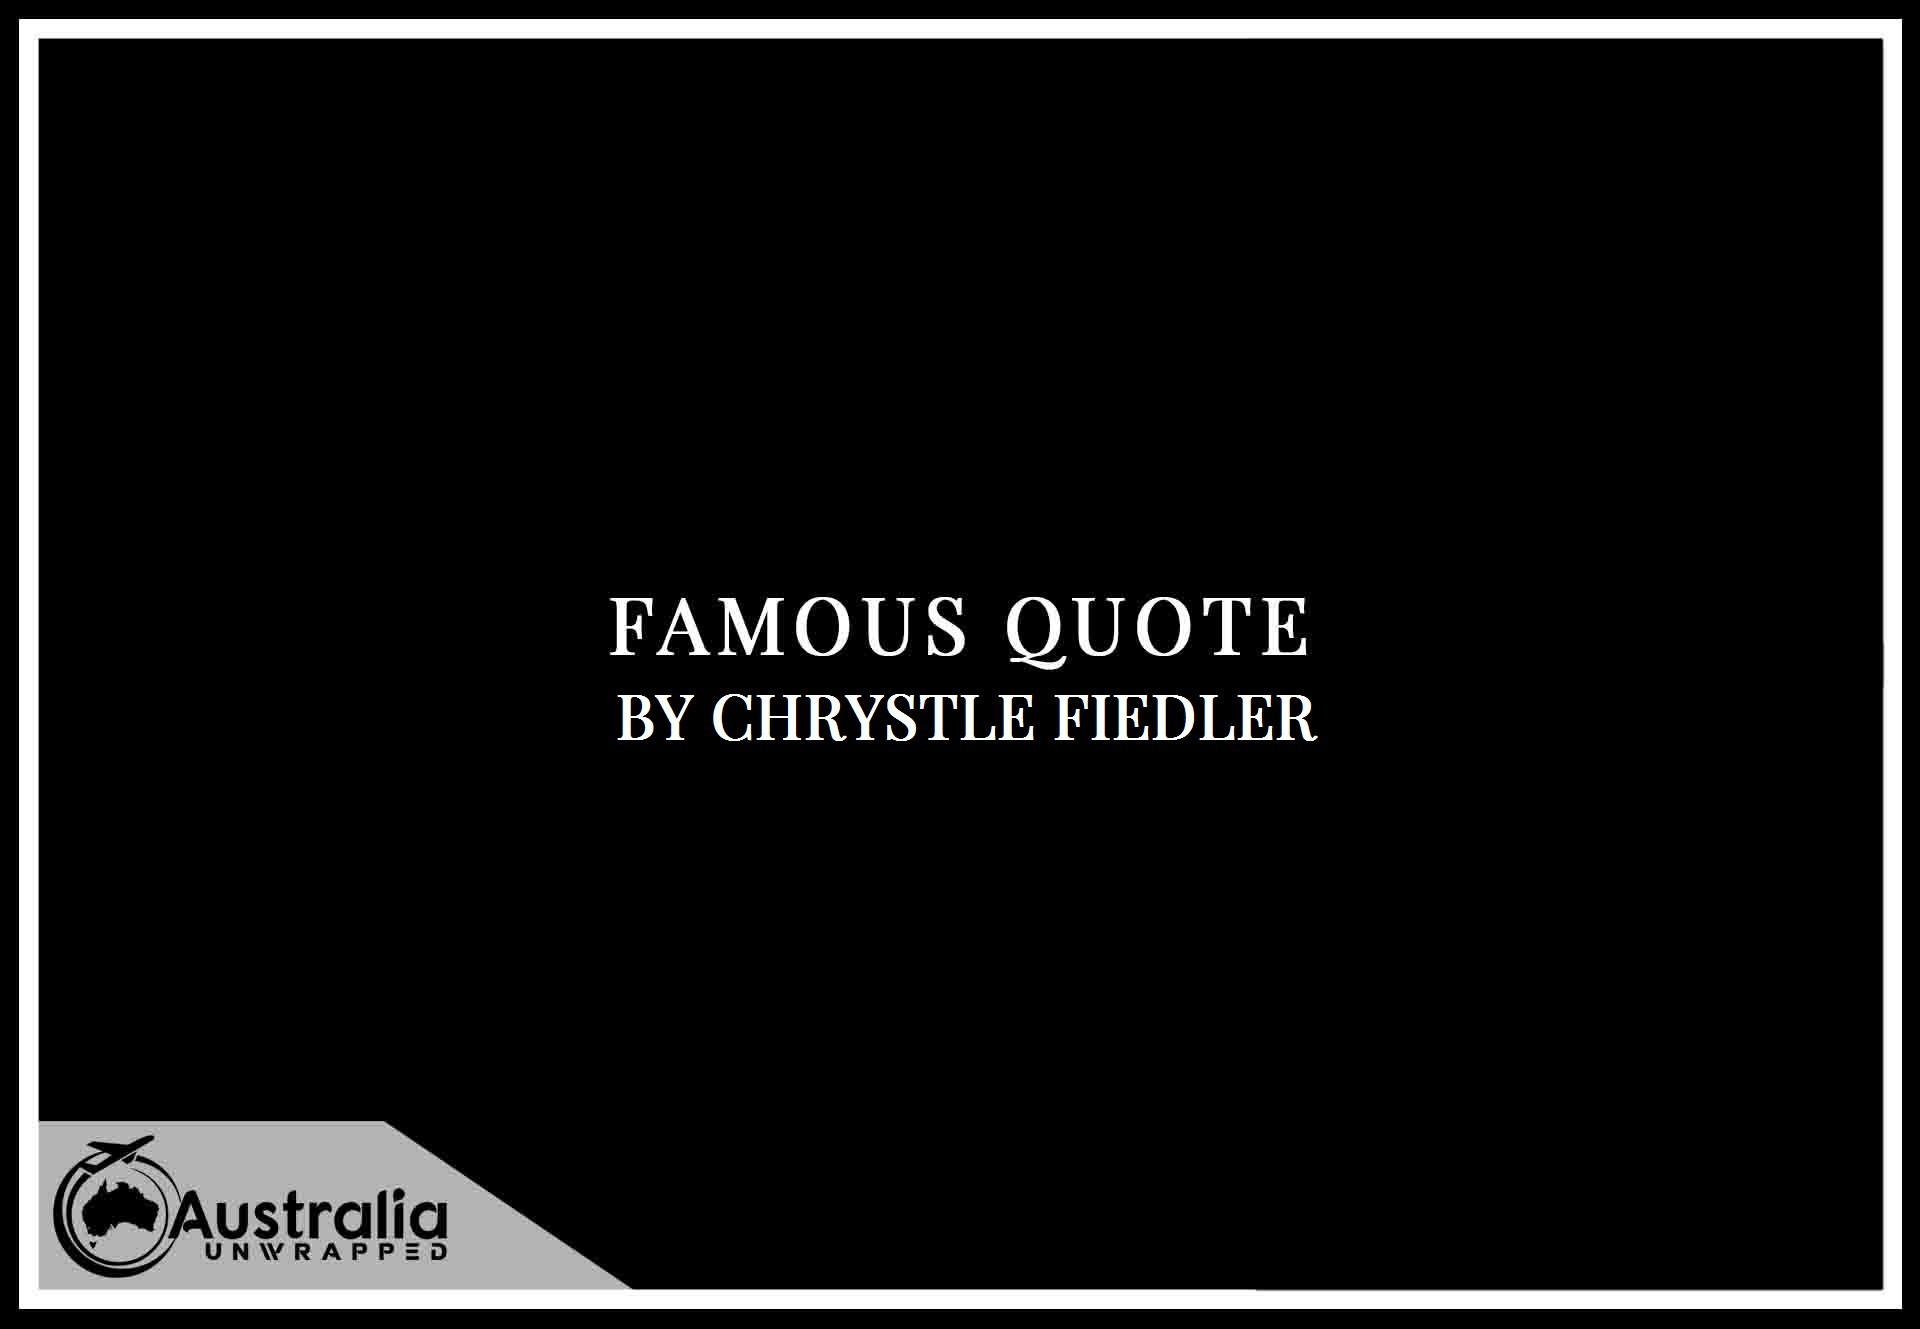 Chrystle Fiedler's Top 1 Popular and Famous Quotes